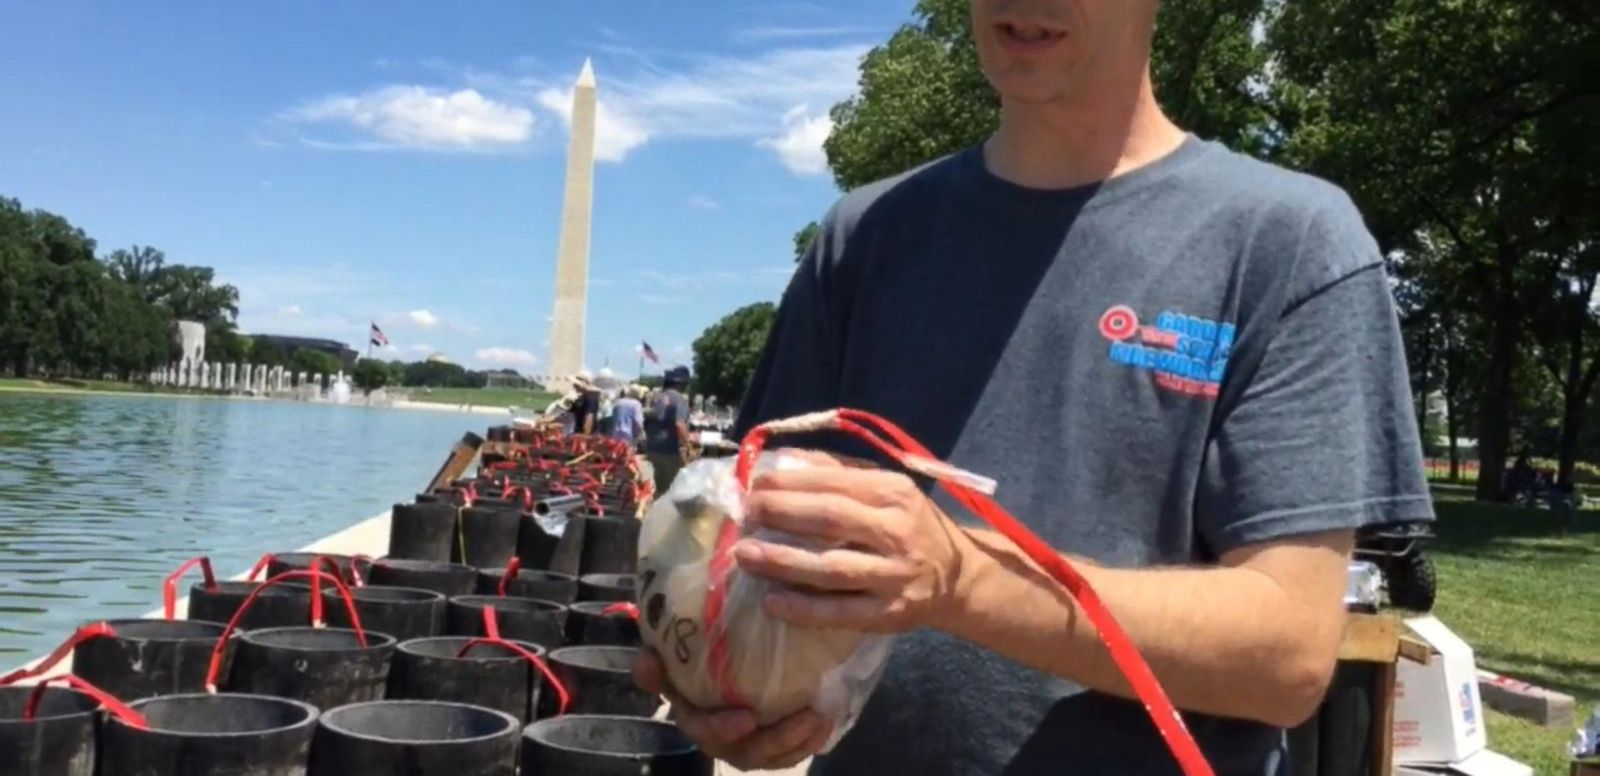 VIDEO: Preview of the Fourth of July Firework Display at the National Mall